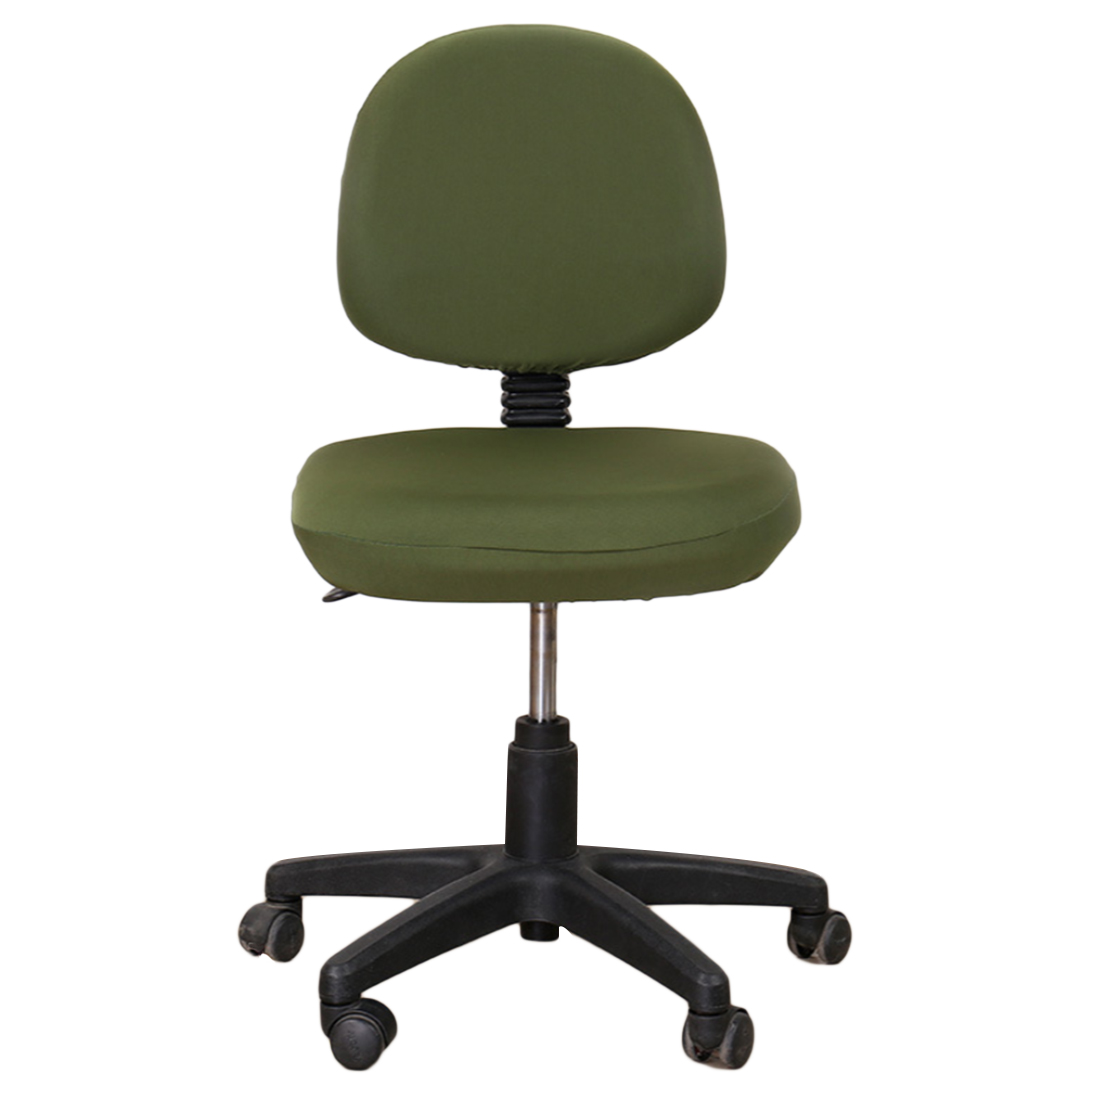 Elastic Chair Covers Made with Polyester Material For Office and Computer Chair in Universal Size 19